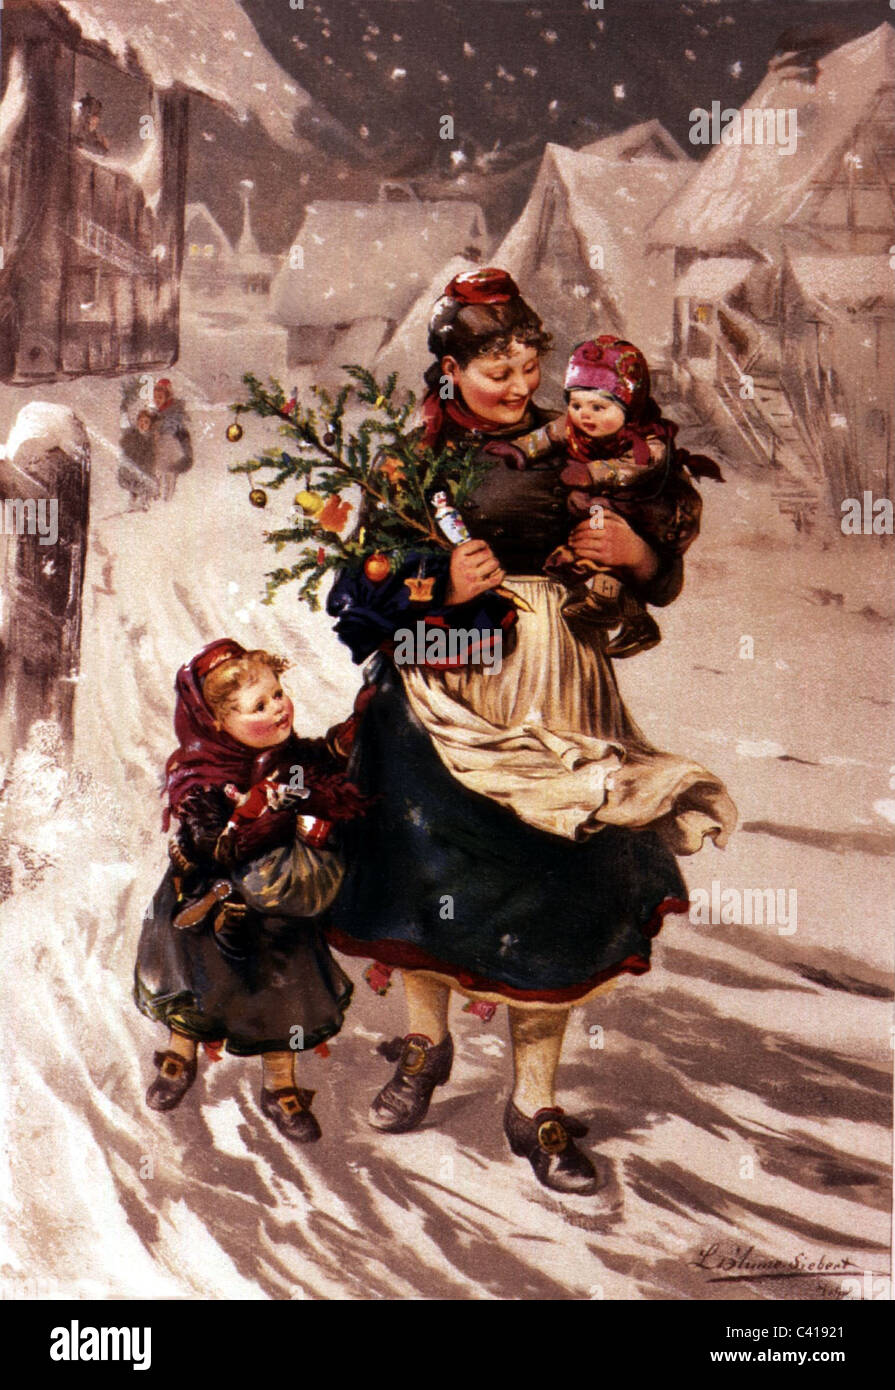 Christmas, 'After the gift giving', lithograph after painting by Ludwig Blume-Siebert (1853 - 1929), published - Stock Image